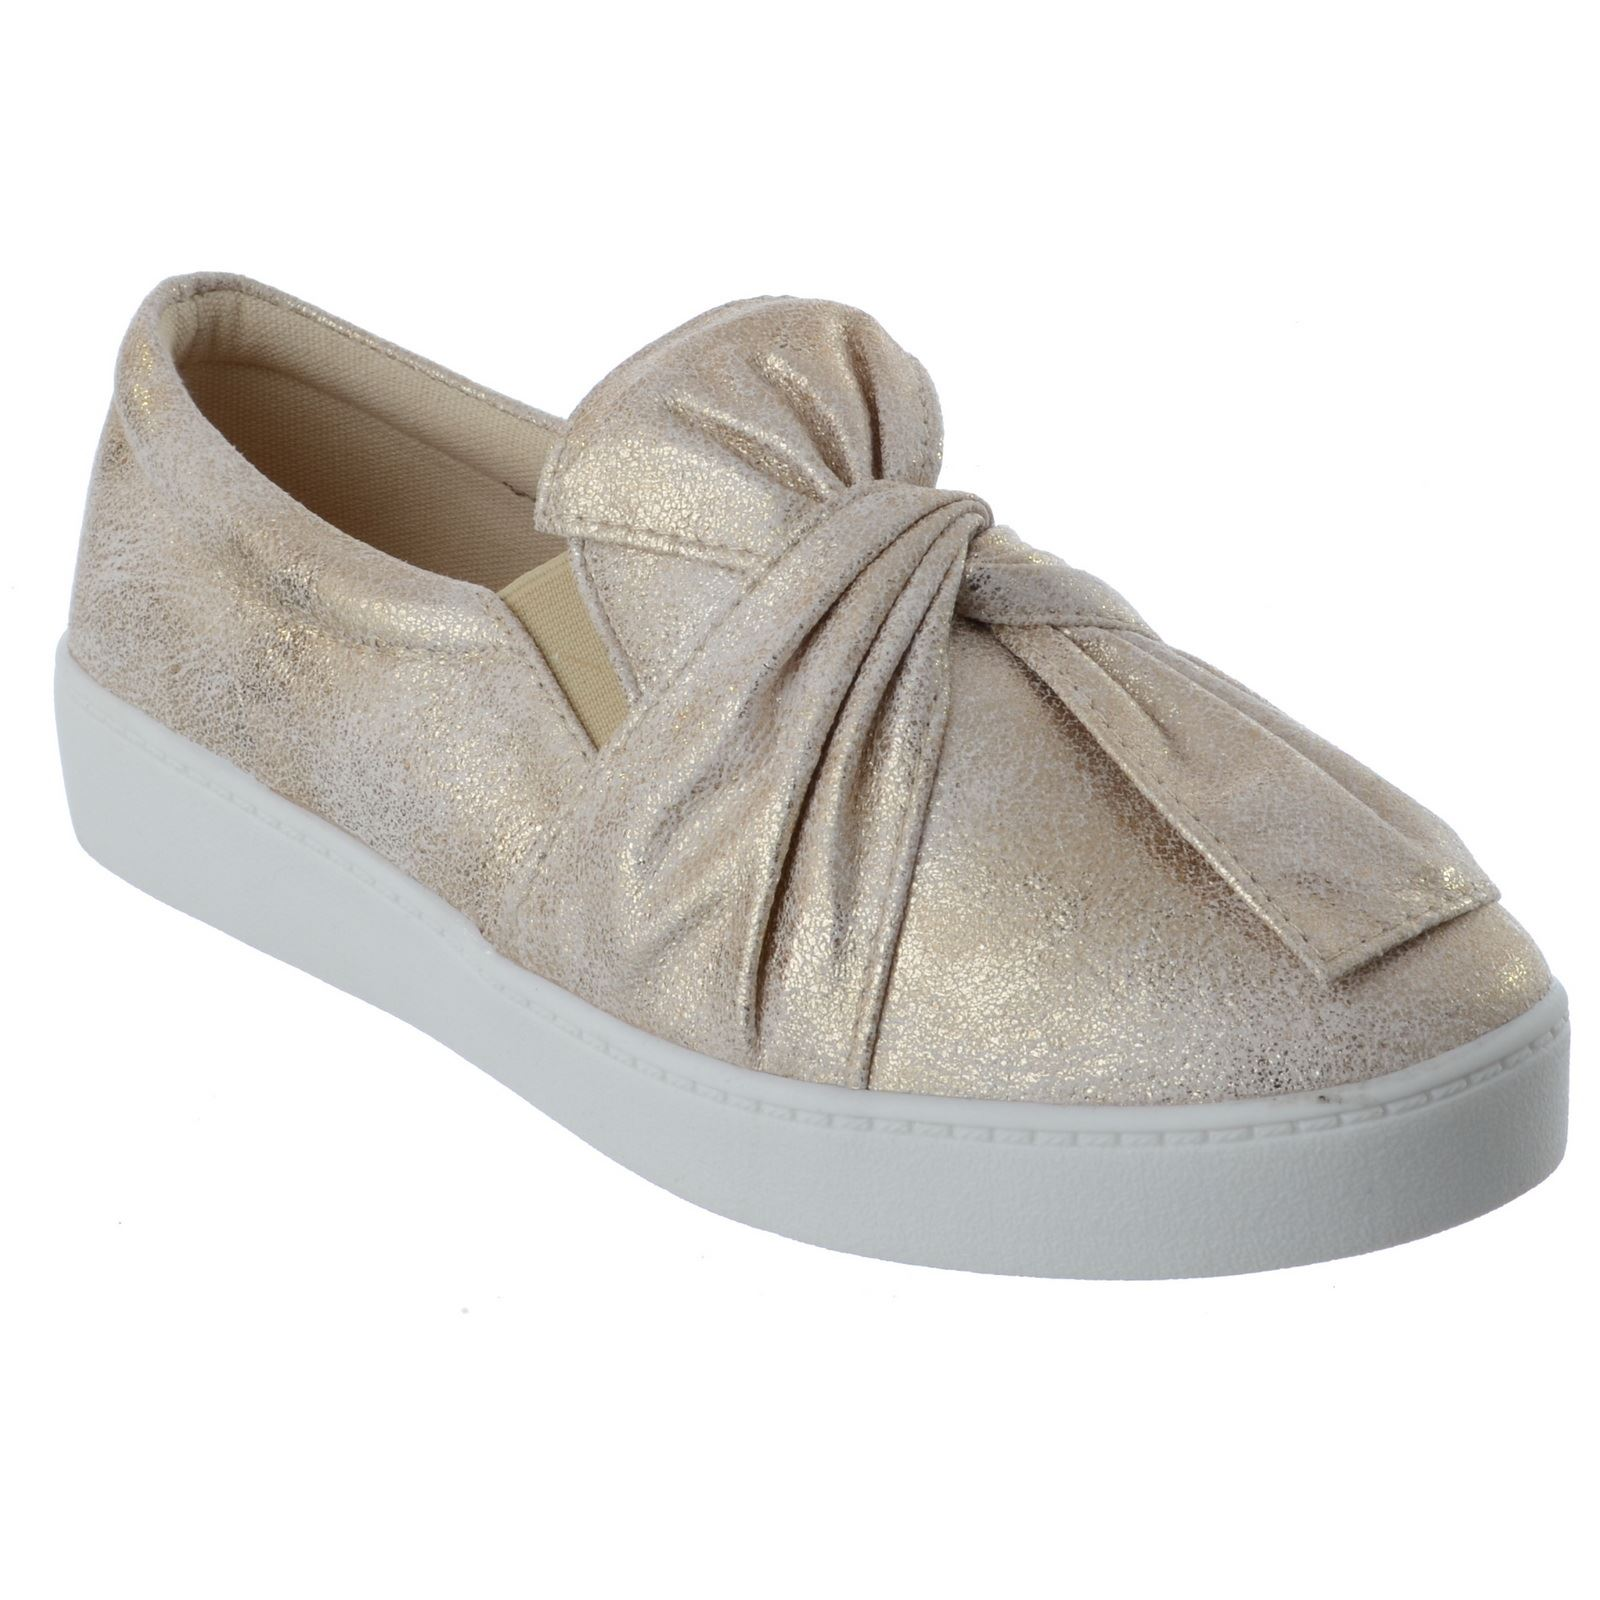 NEW LADIES WOMENS FLAT LOW HEEL BOW SLIP ON TRAINERS SNEAKERS PUMPS SHOES SIZE